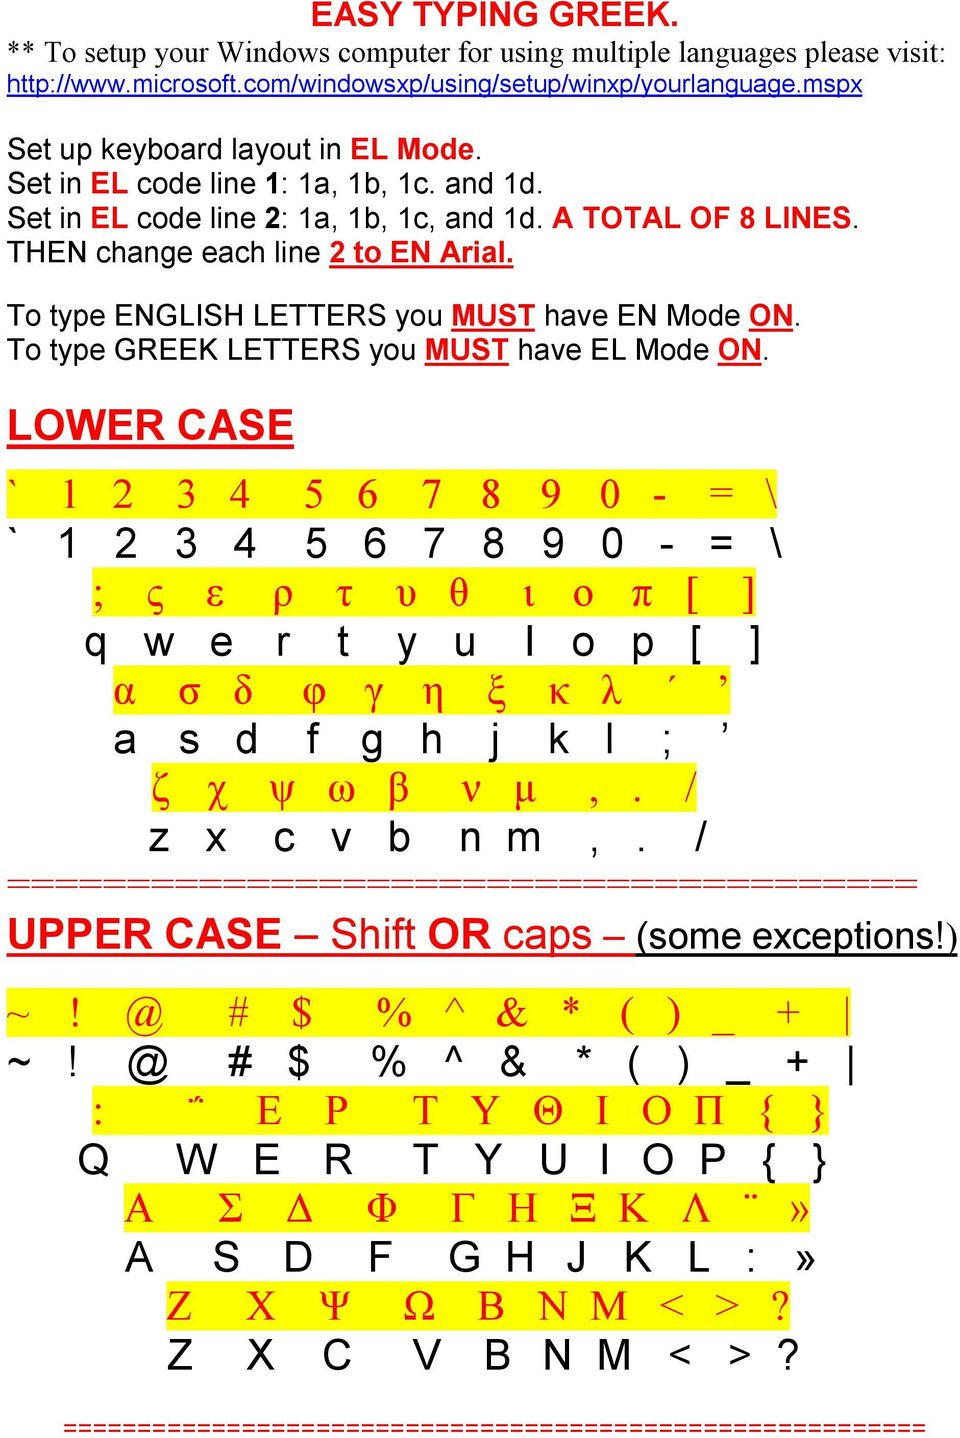 To type ENGLISH LETTERS you MUST have EN Mode ON. To type GREEK LETTERS you MUST have EL Mode ON.